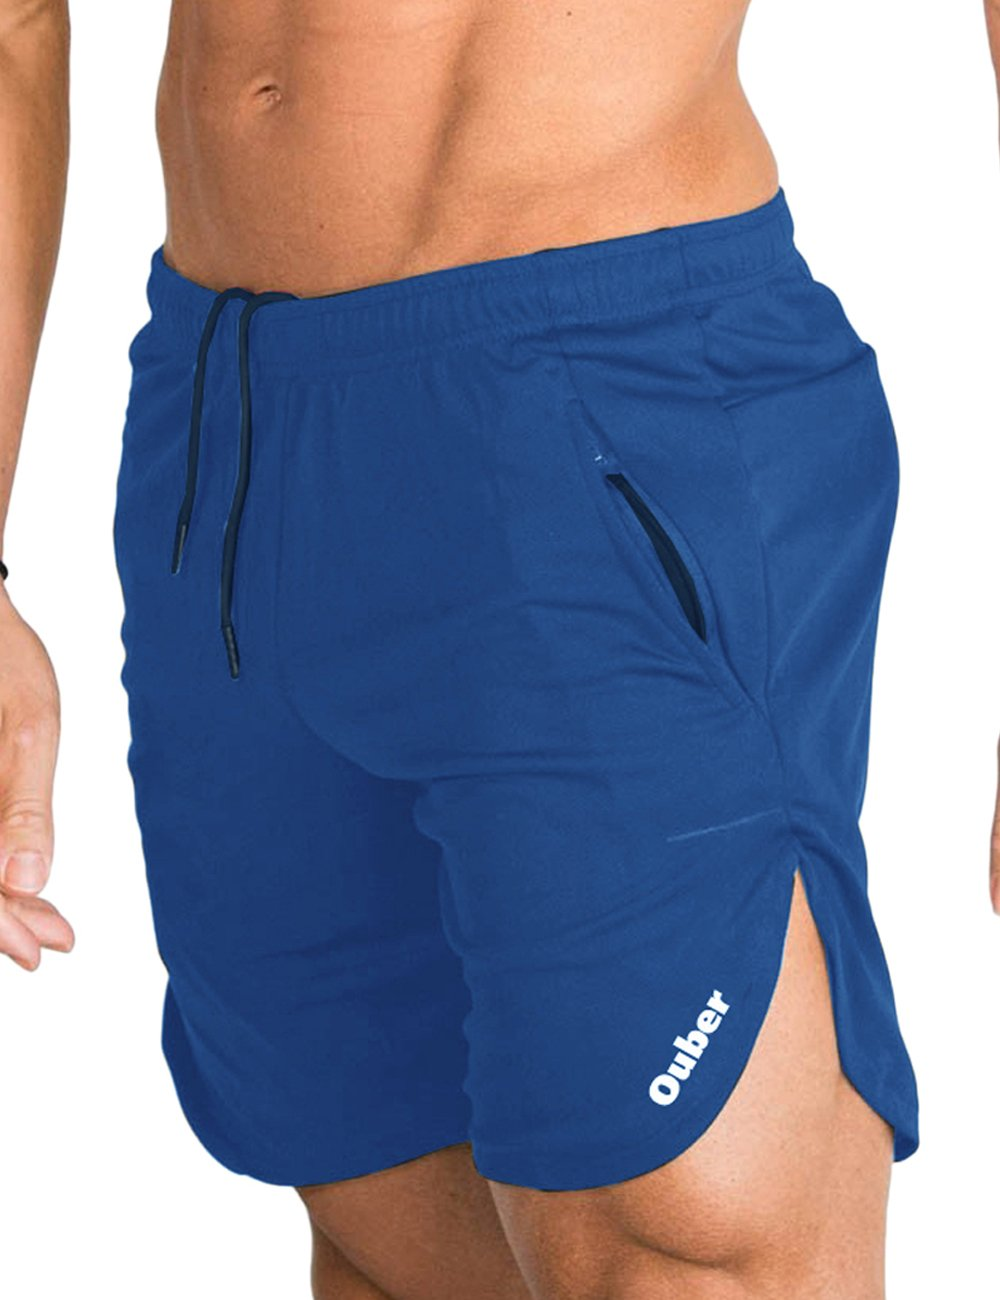 Ouber Men's Cotton Workout Shorts Gym Running Bodybuilding with Zipper Pockets (Blue,M)